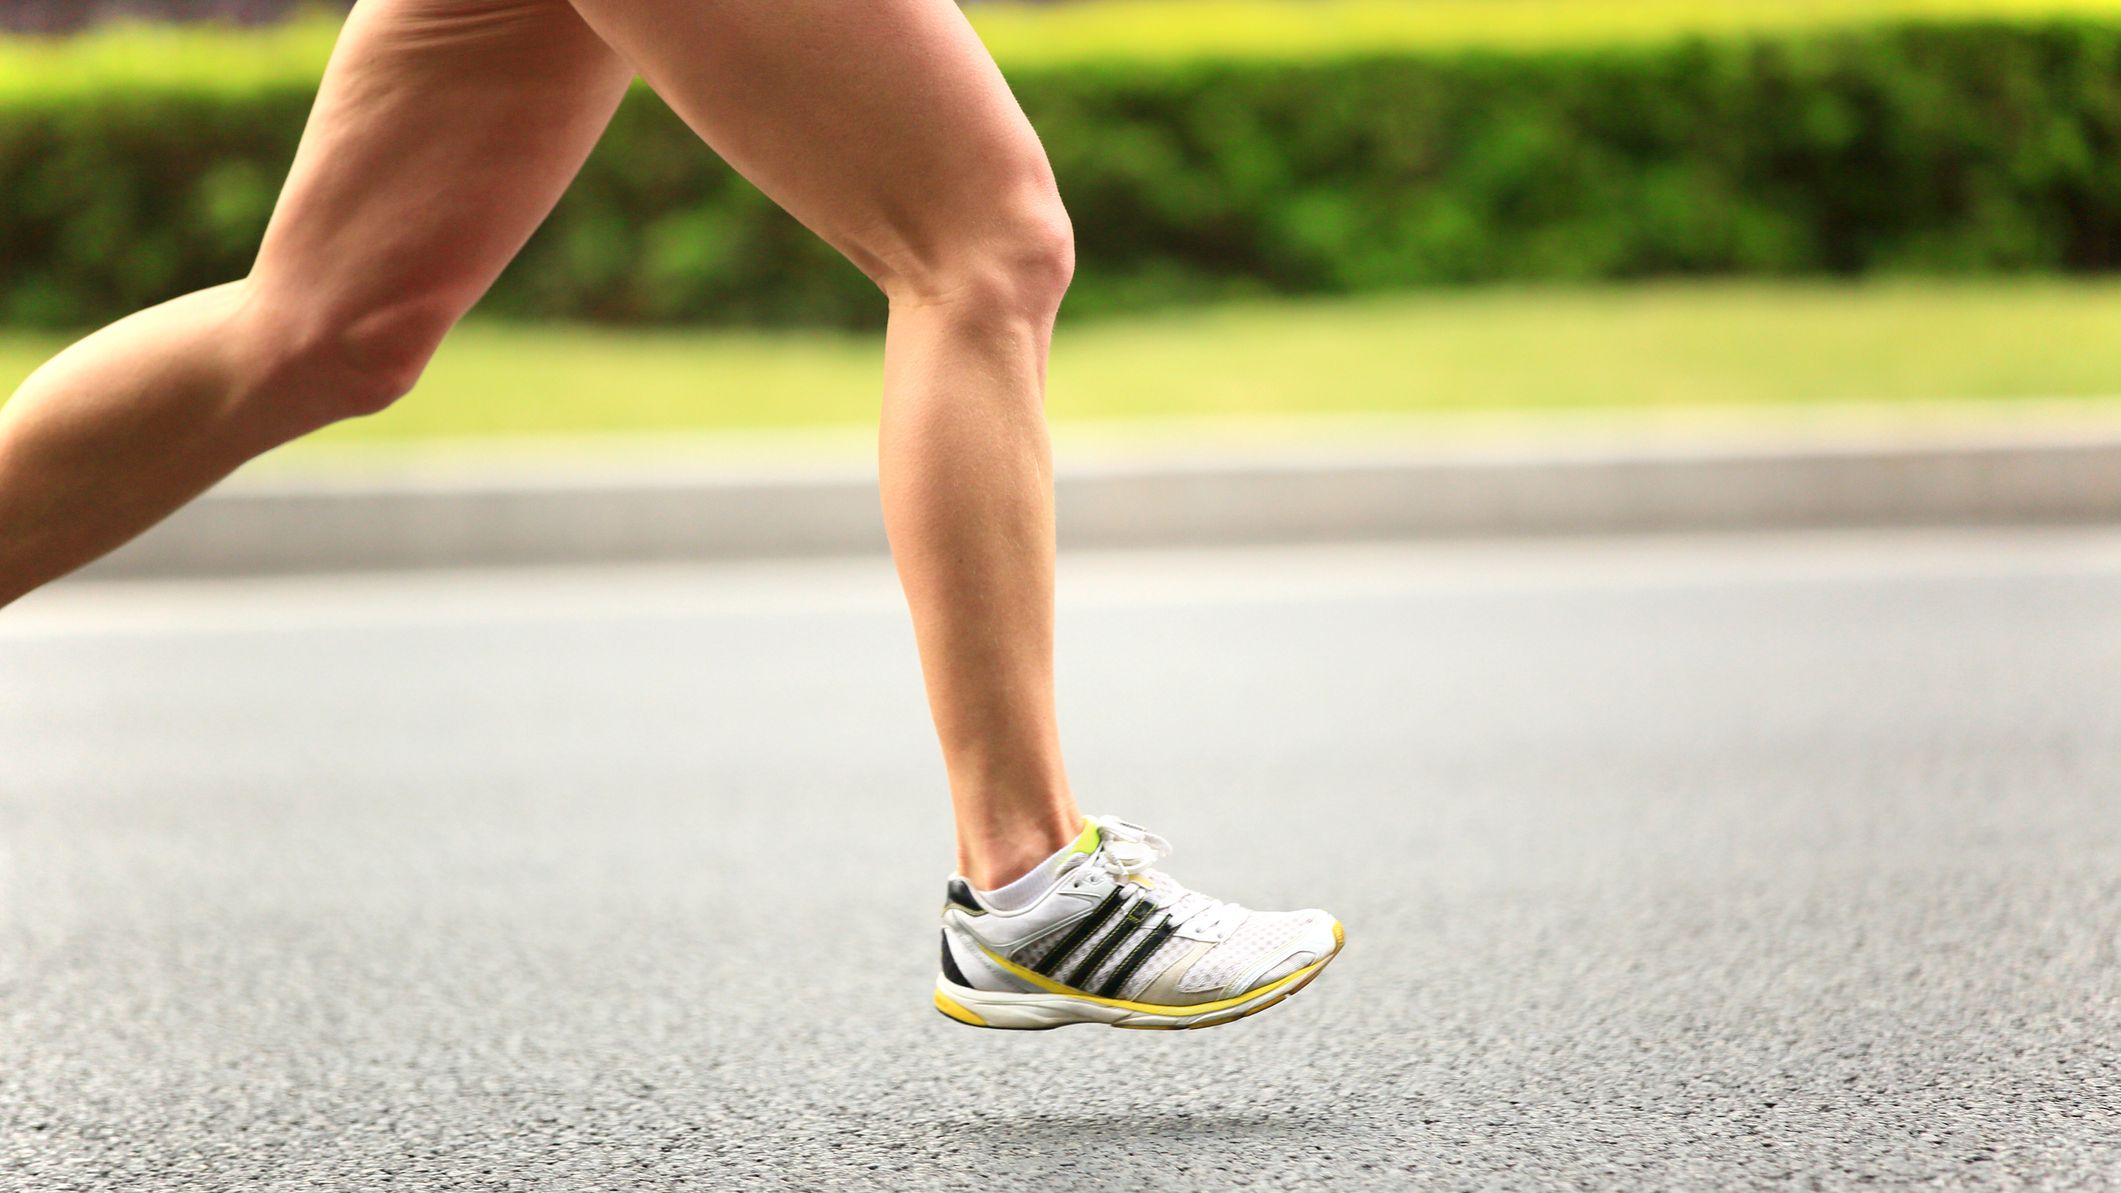 What Are The Symptoms Of Shin Splints